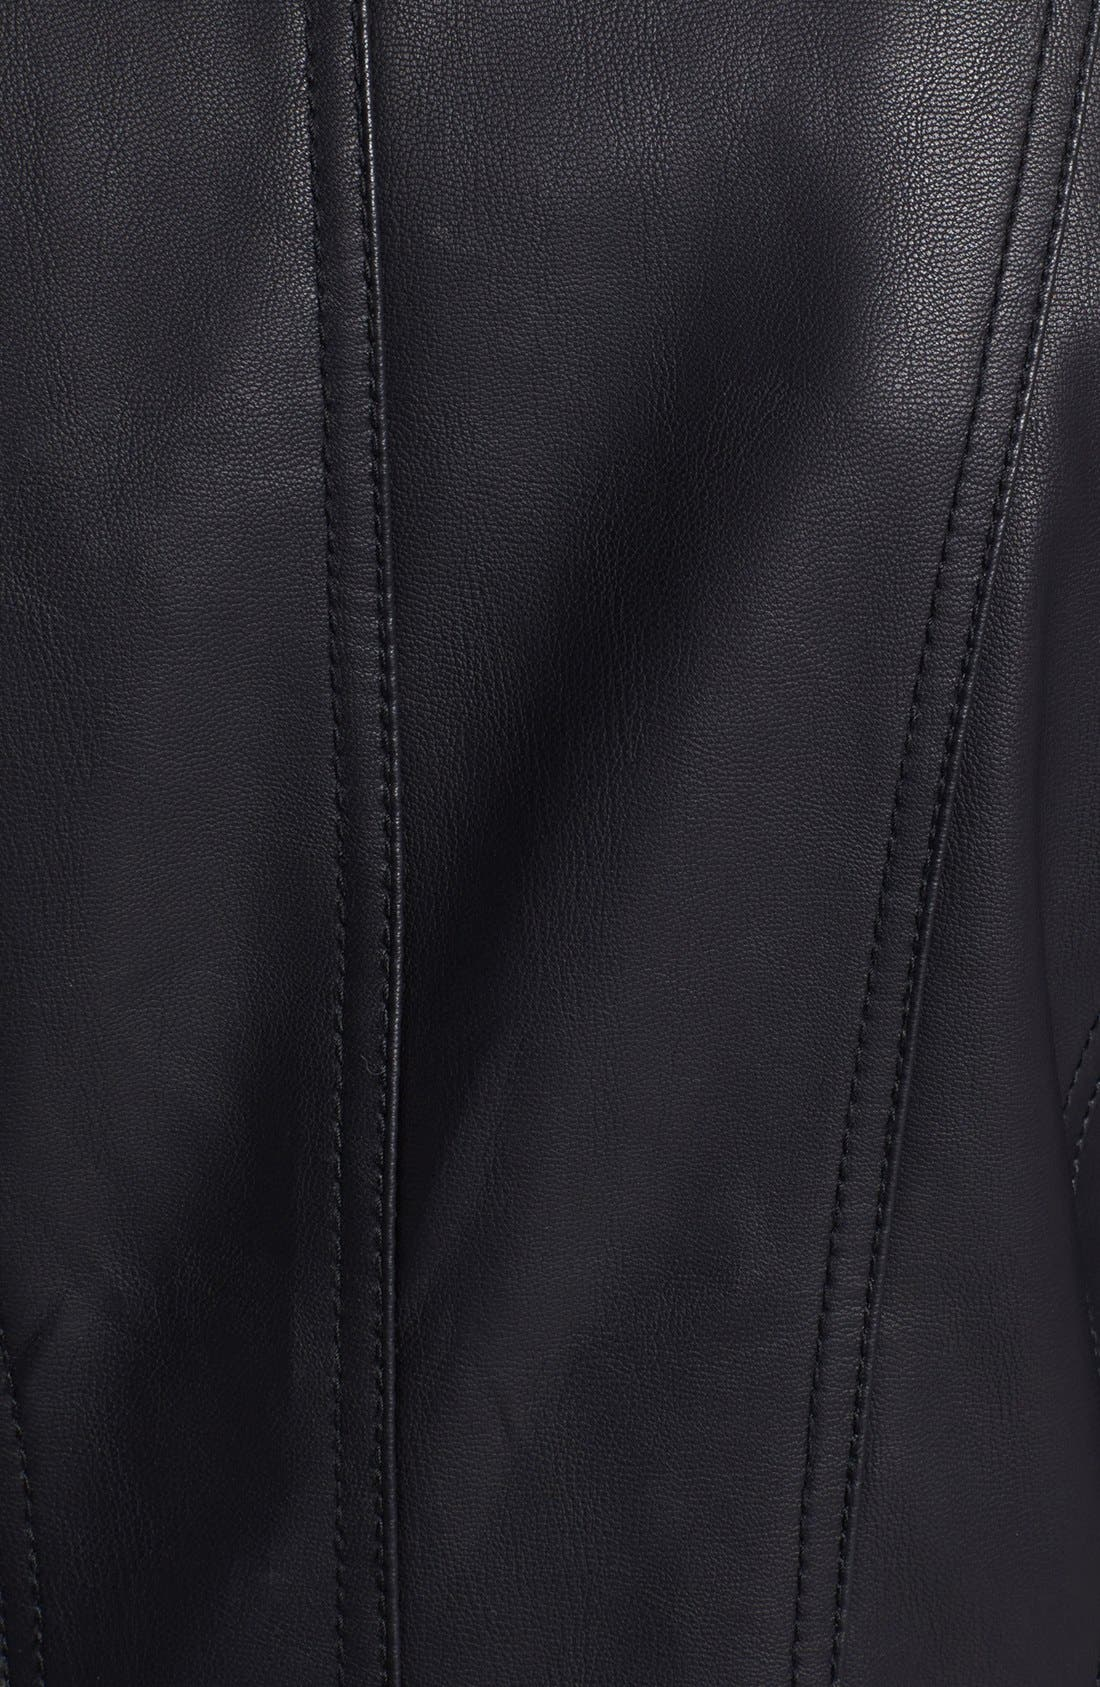 Alternate Image 3  - GUESS Faux Leather & Wool Blend Moto Jacket